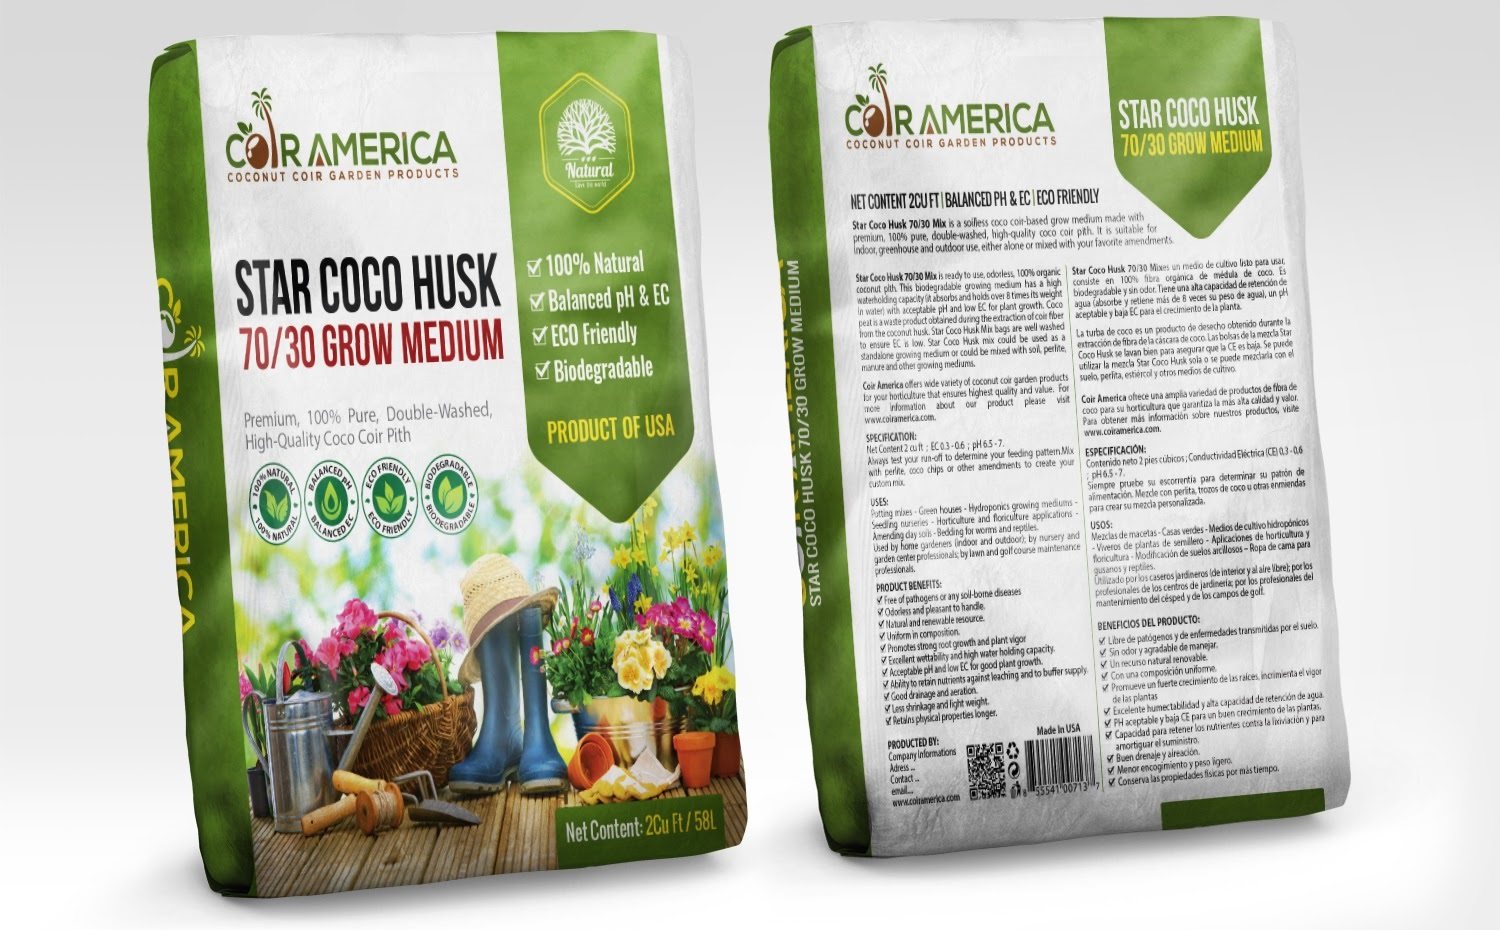 All Natural Coco Peat Loose Bag - Coco Coir Soil Mix